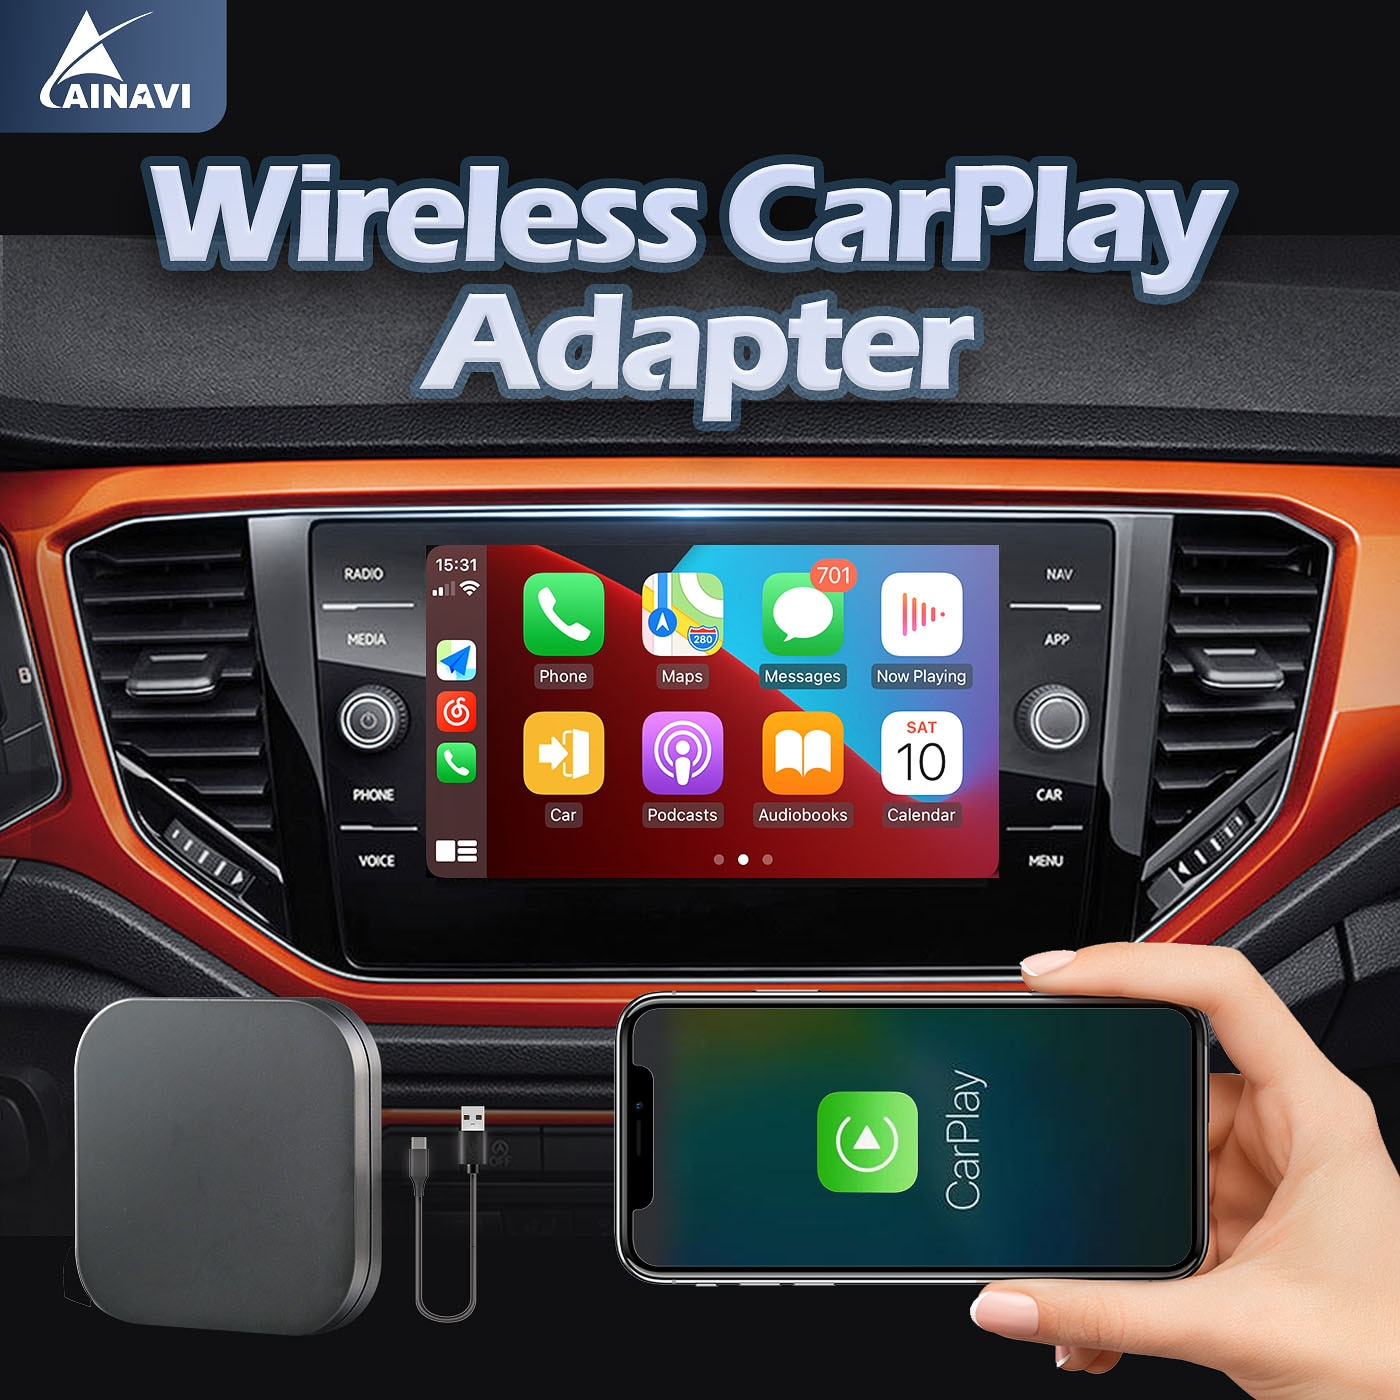 Promo Wireless apple iPhone CarPlay Dongle Adapter USB for Factory Wired CarPlay Cars (Model Year: 2015 to 2020) Wireless  CarPlay